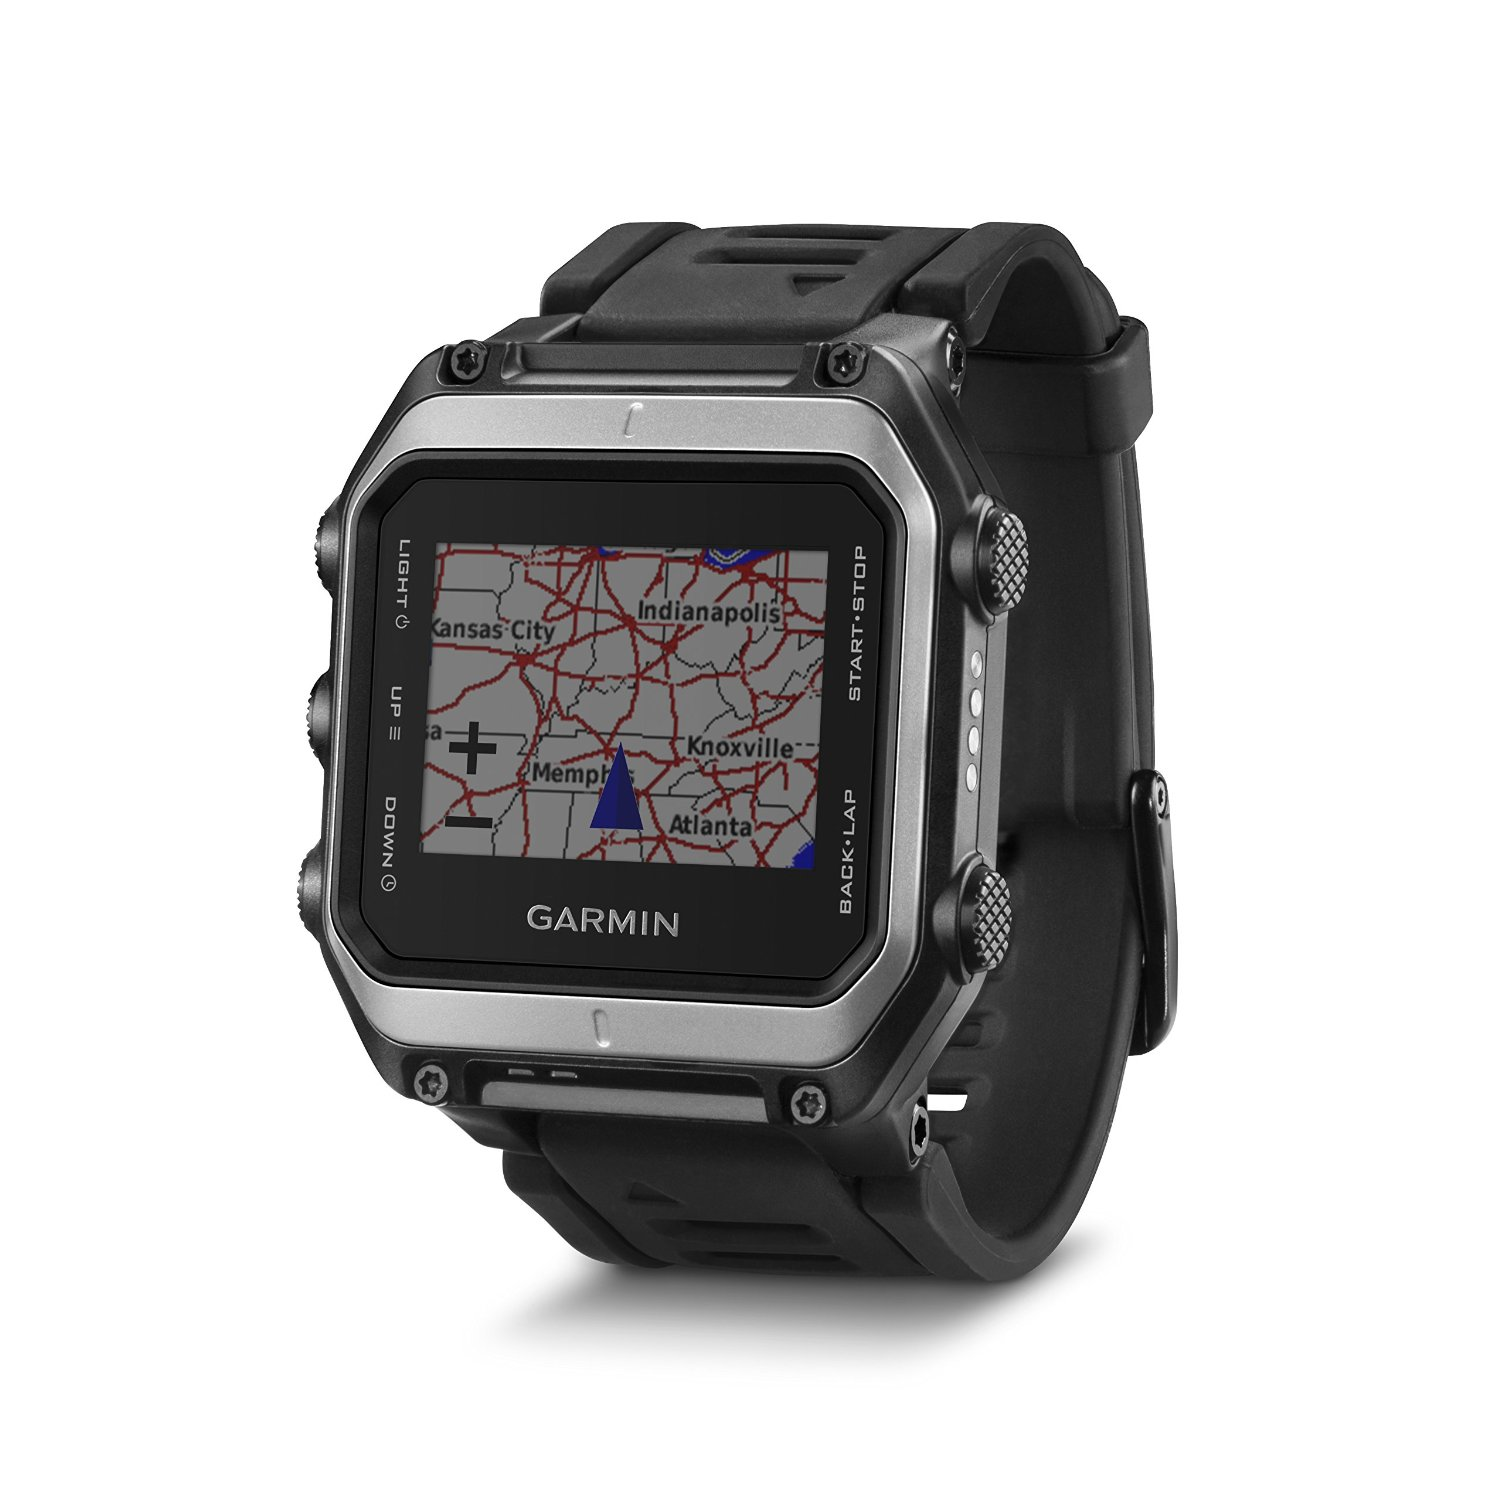 10 of the best sports watches for 10 different activities activity tracker world for Watches garmin